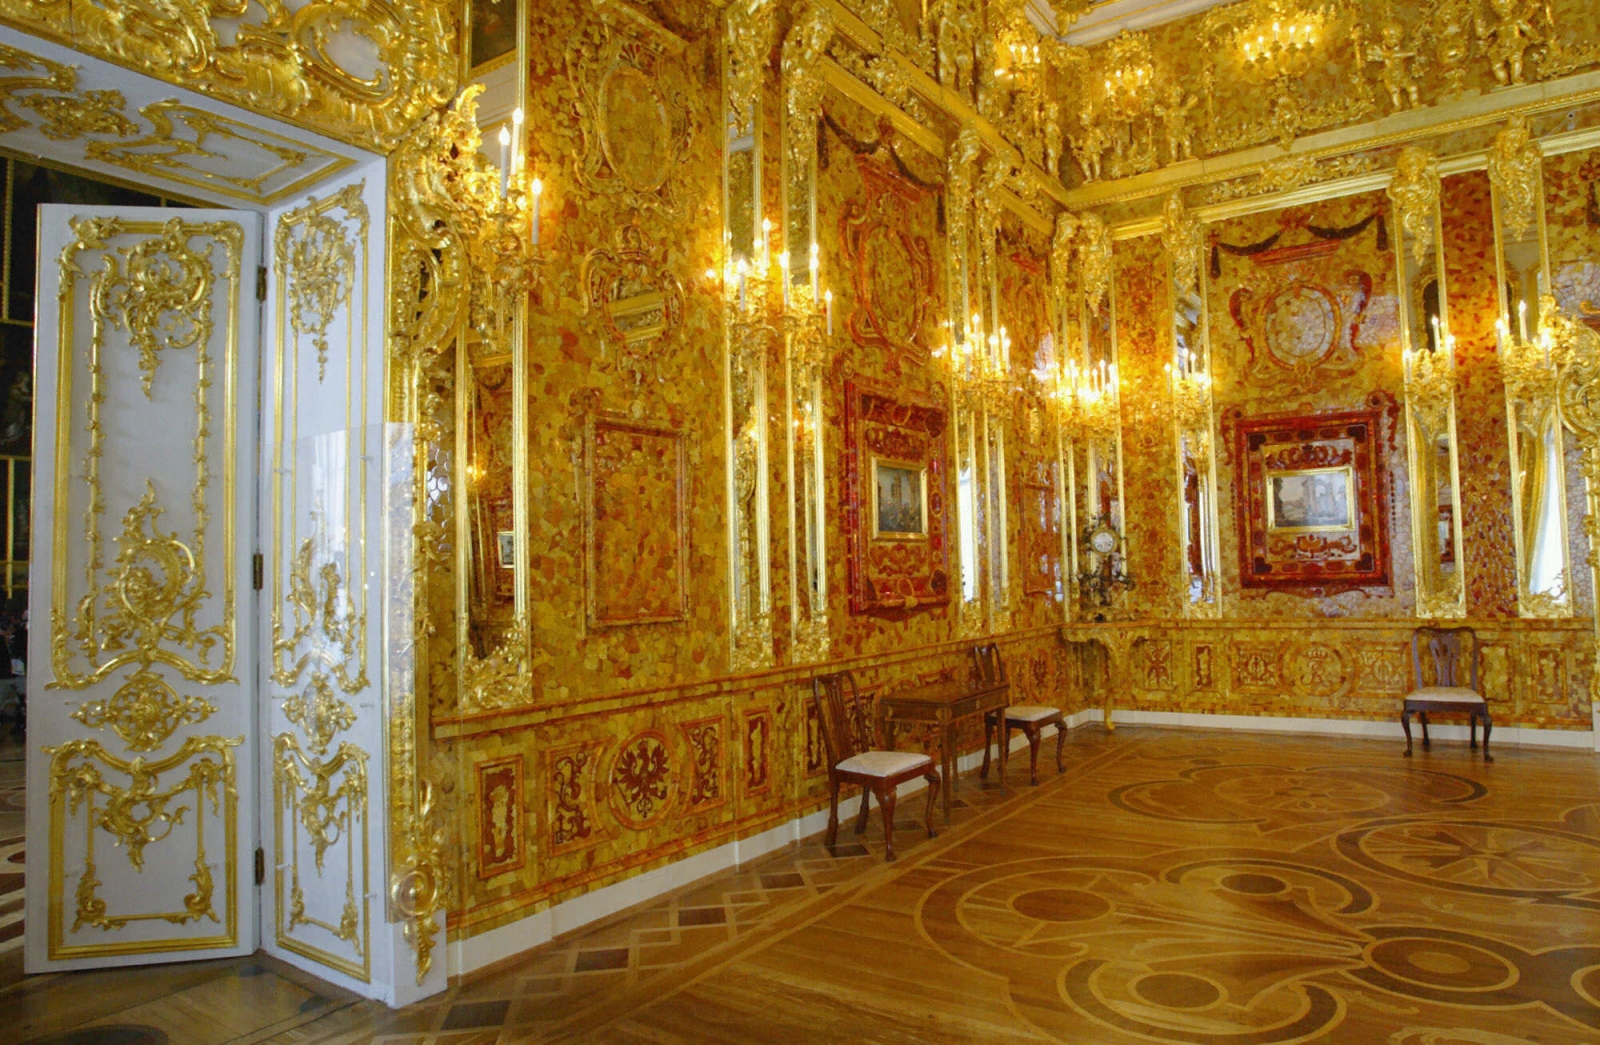 The restored Amber Room in the St